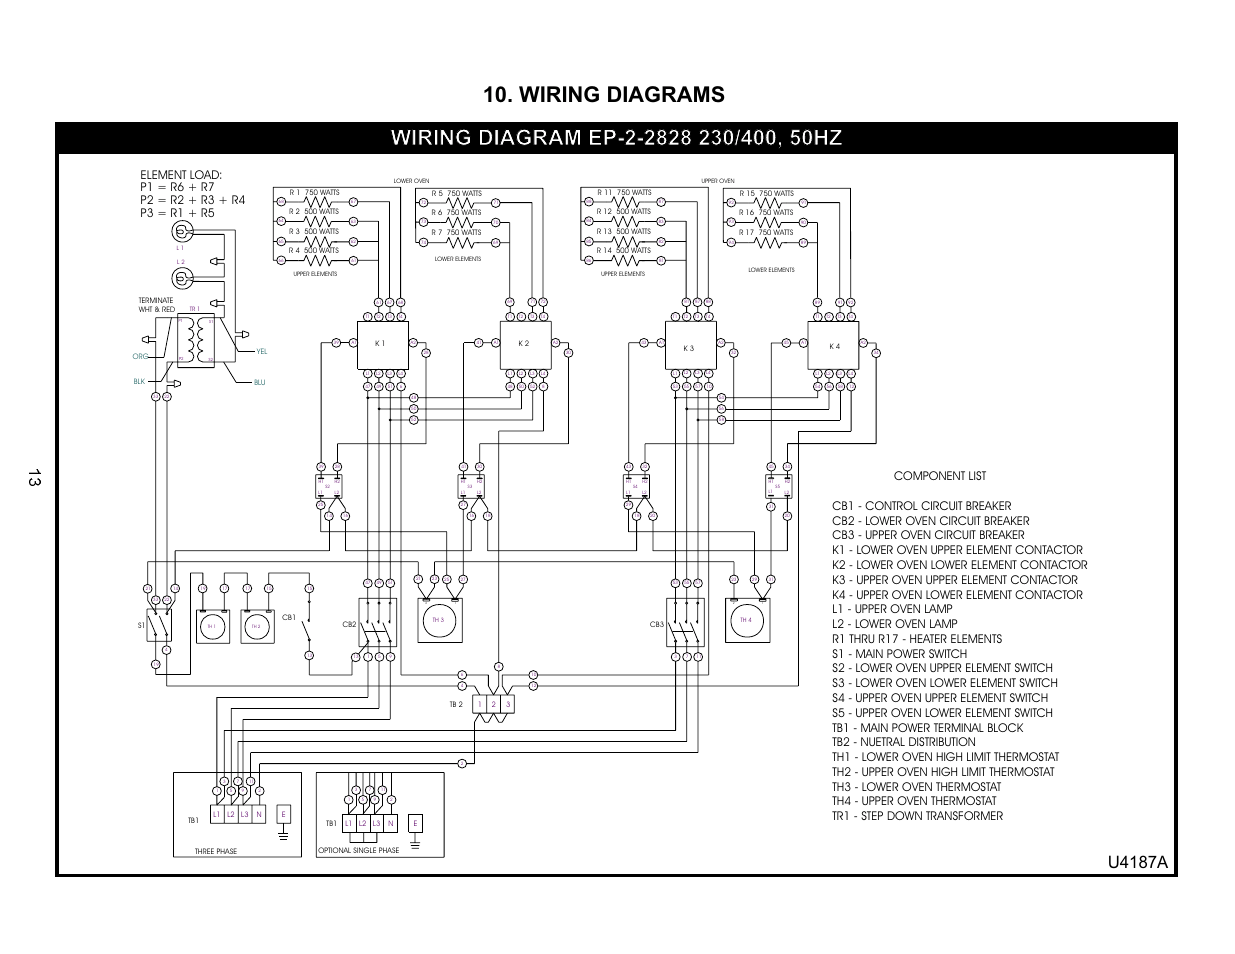 Wiring Diagrams U A